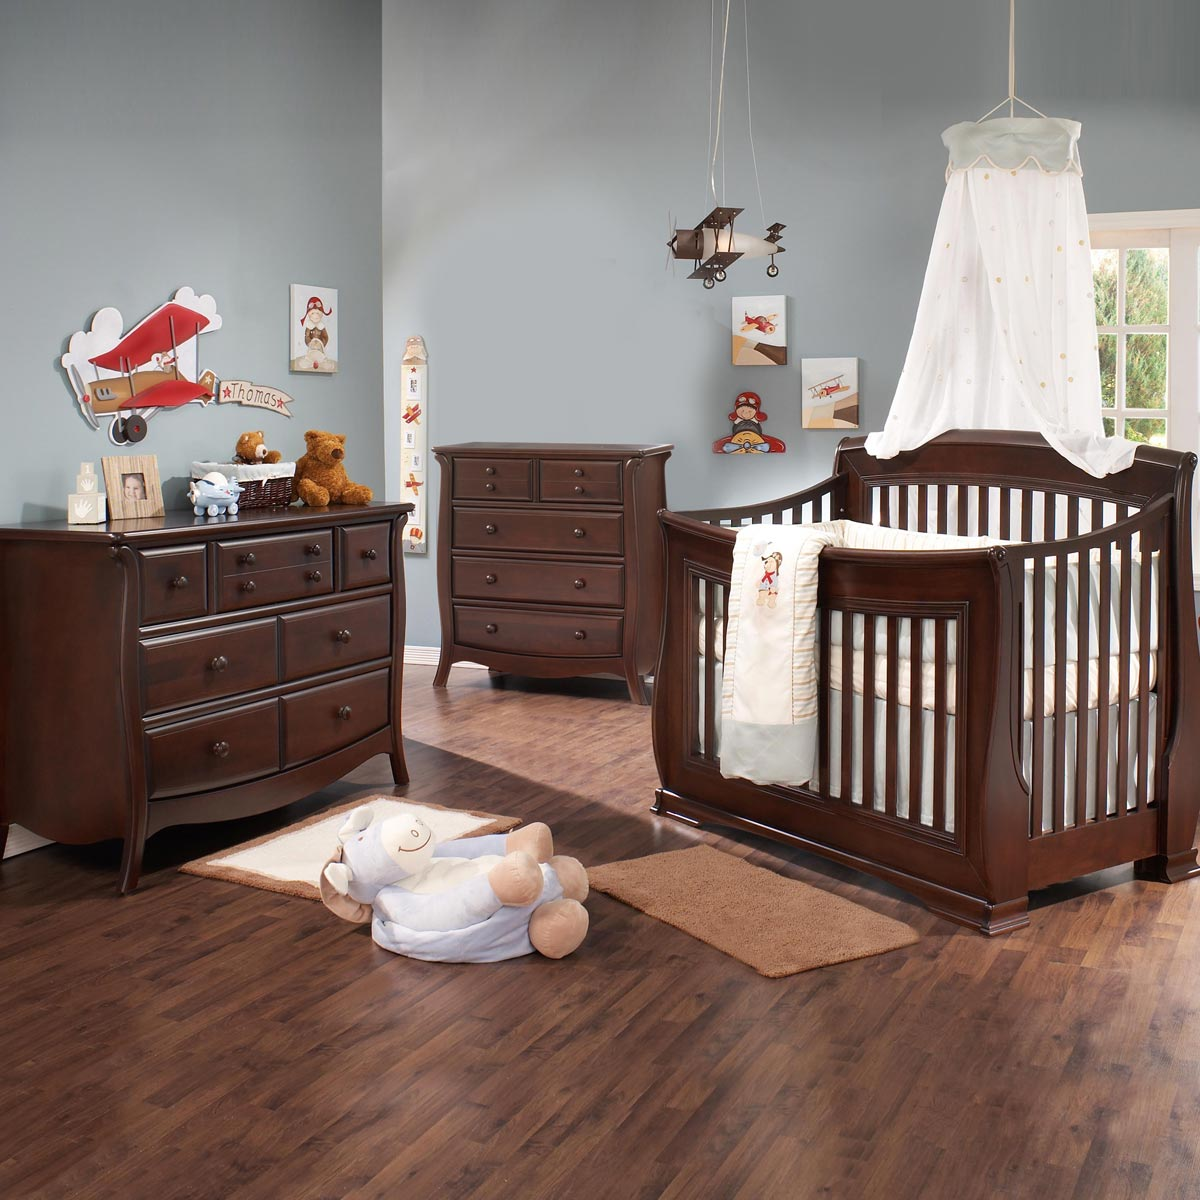 Superbe Natart Bella 3 Piece Nursery Set   4 In 1 Convertible Crib, Double Dresser  And 5 Drawer Dresser In Walnut FREE SHIPPING